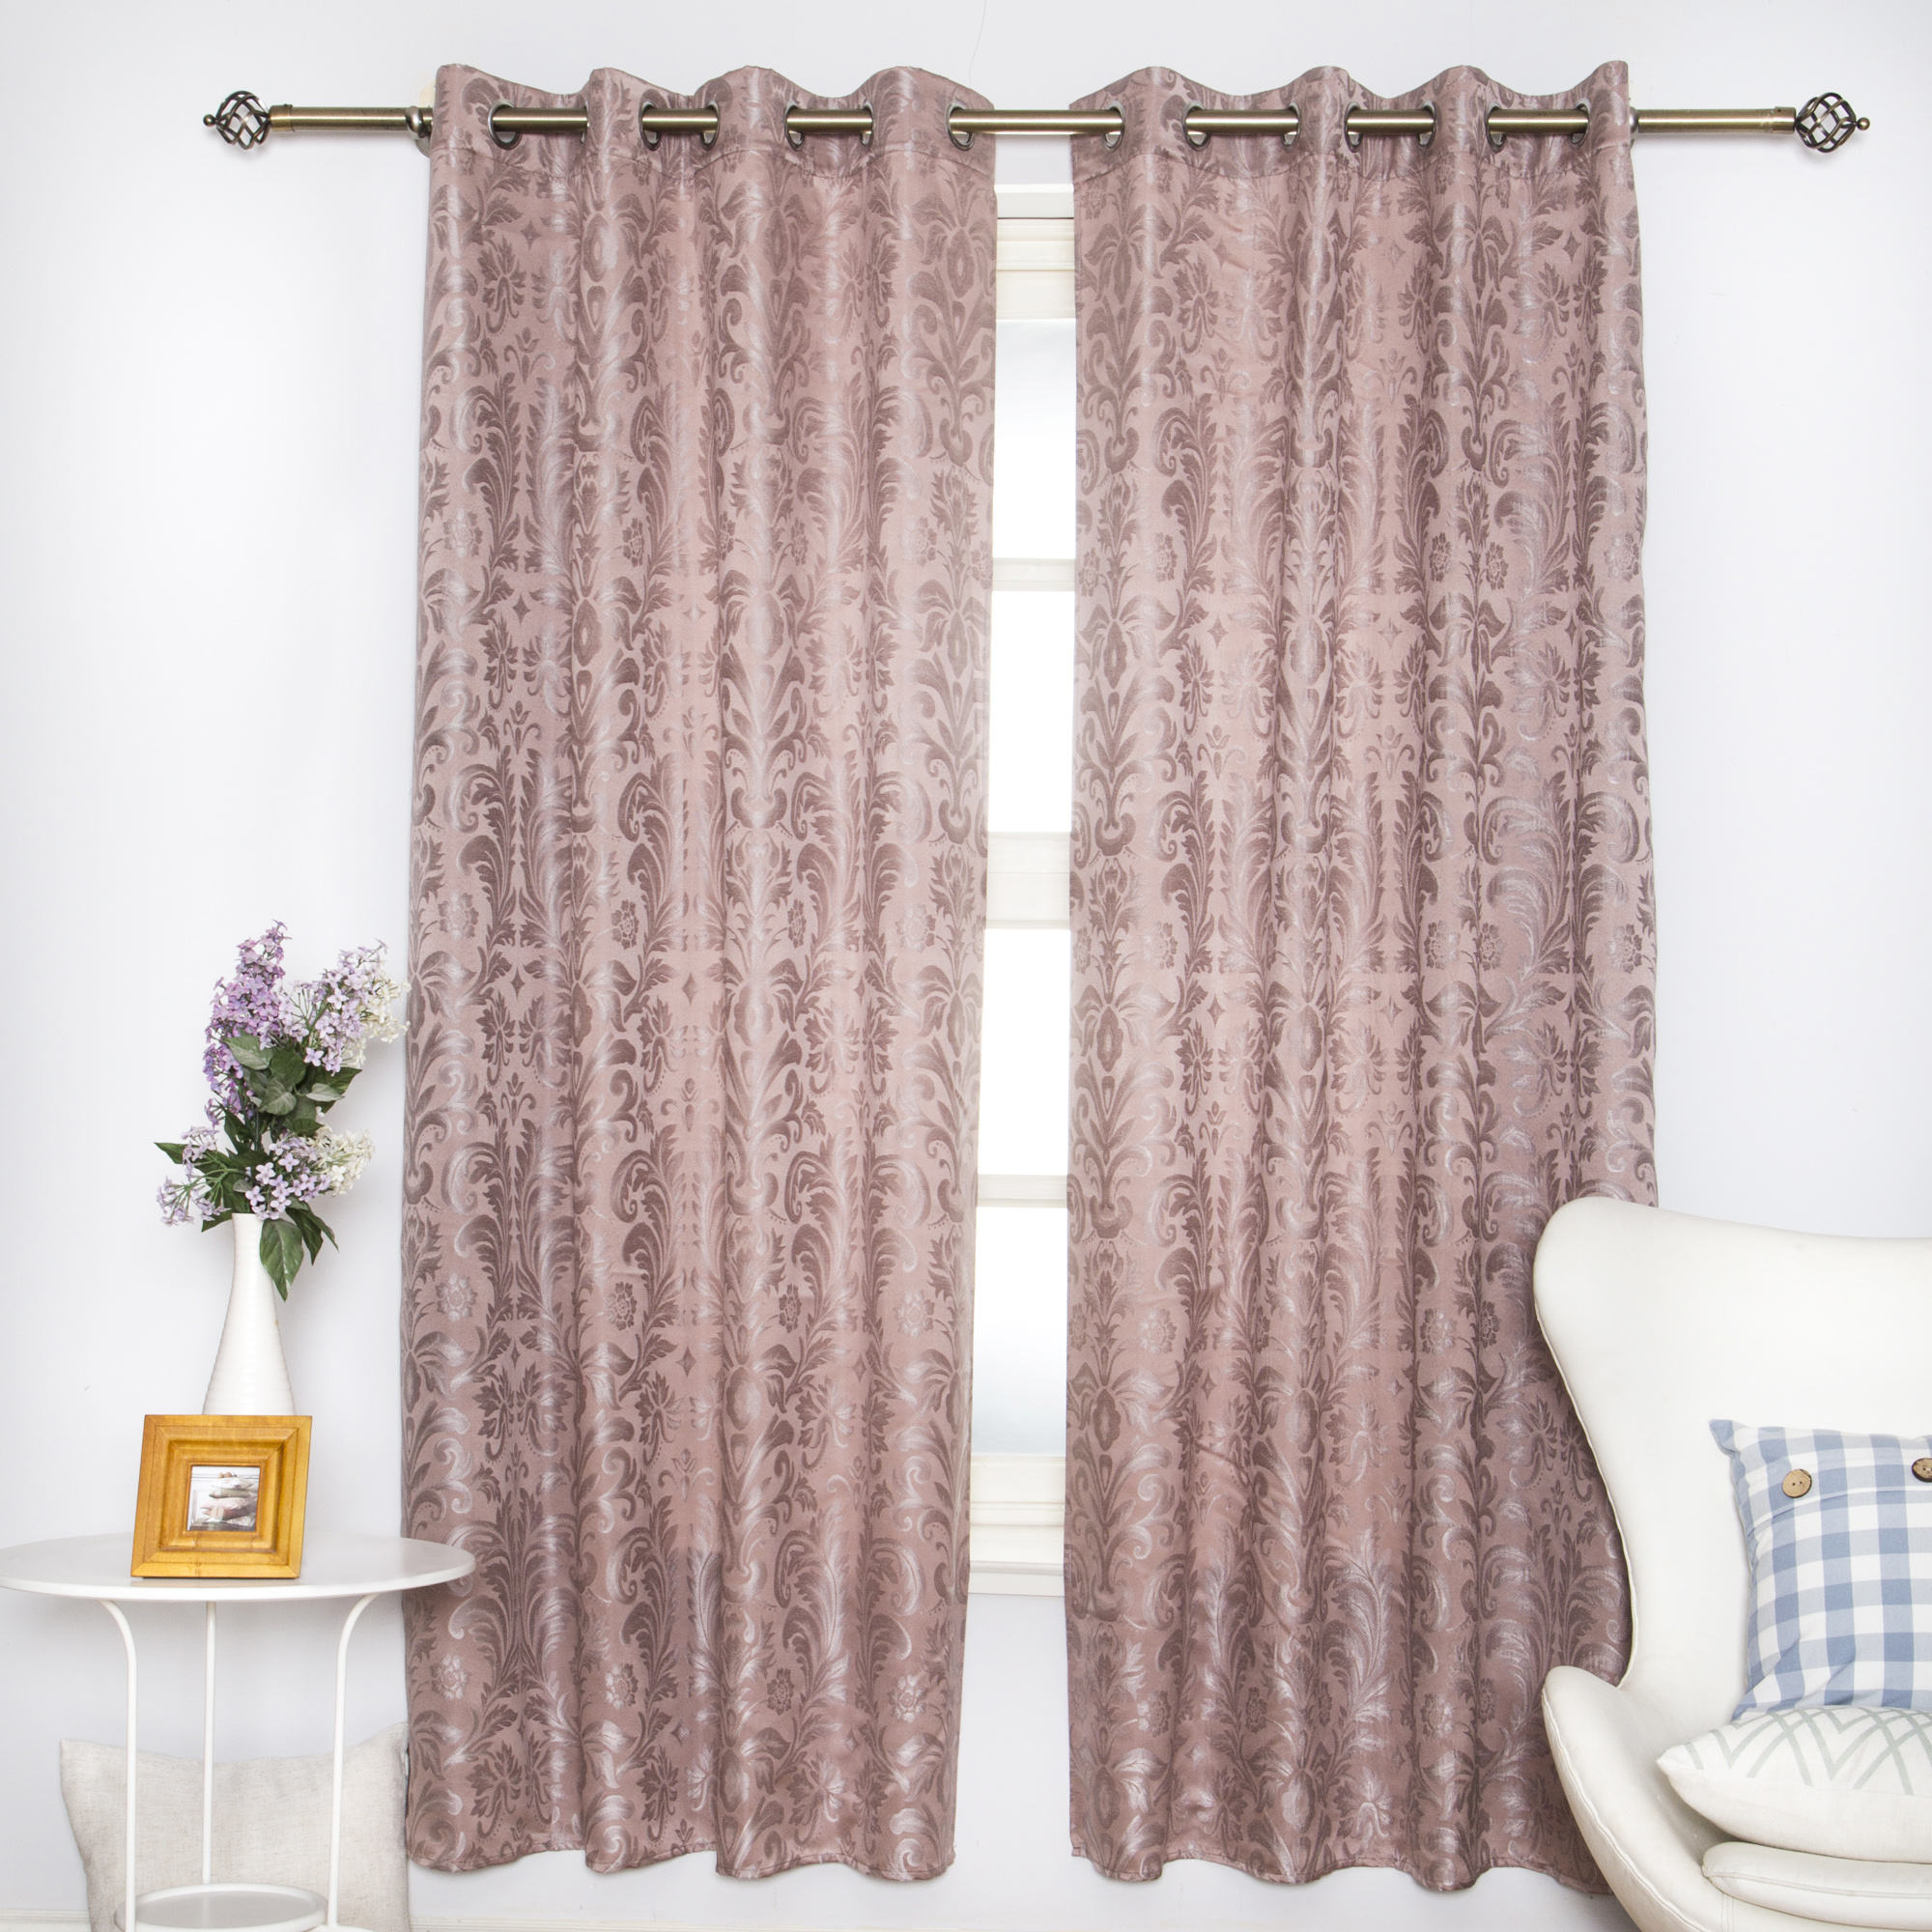 Latest popular cheap good quality hotel and home jacquard curtains